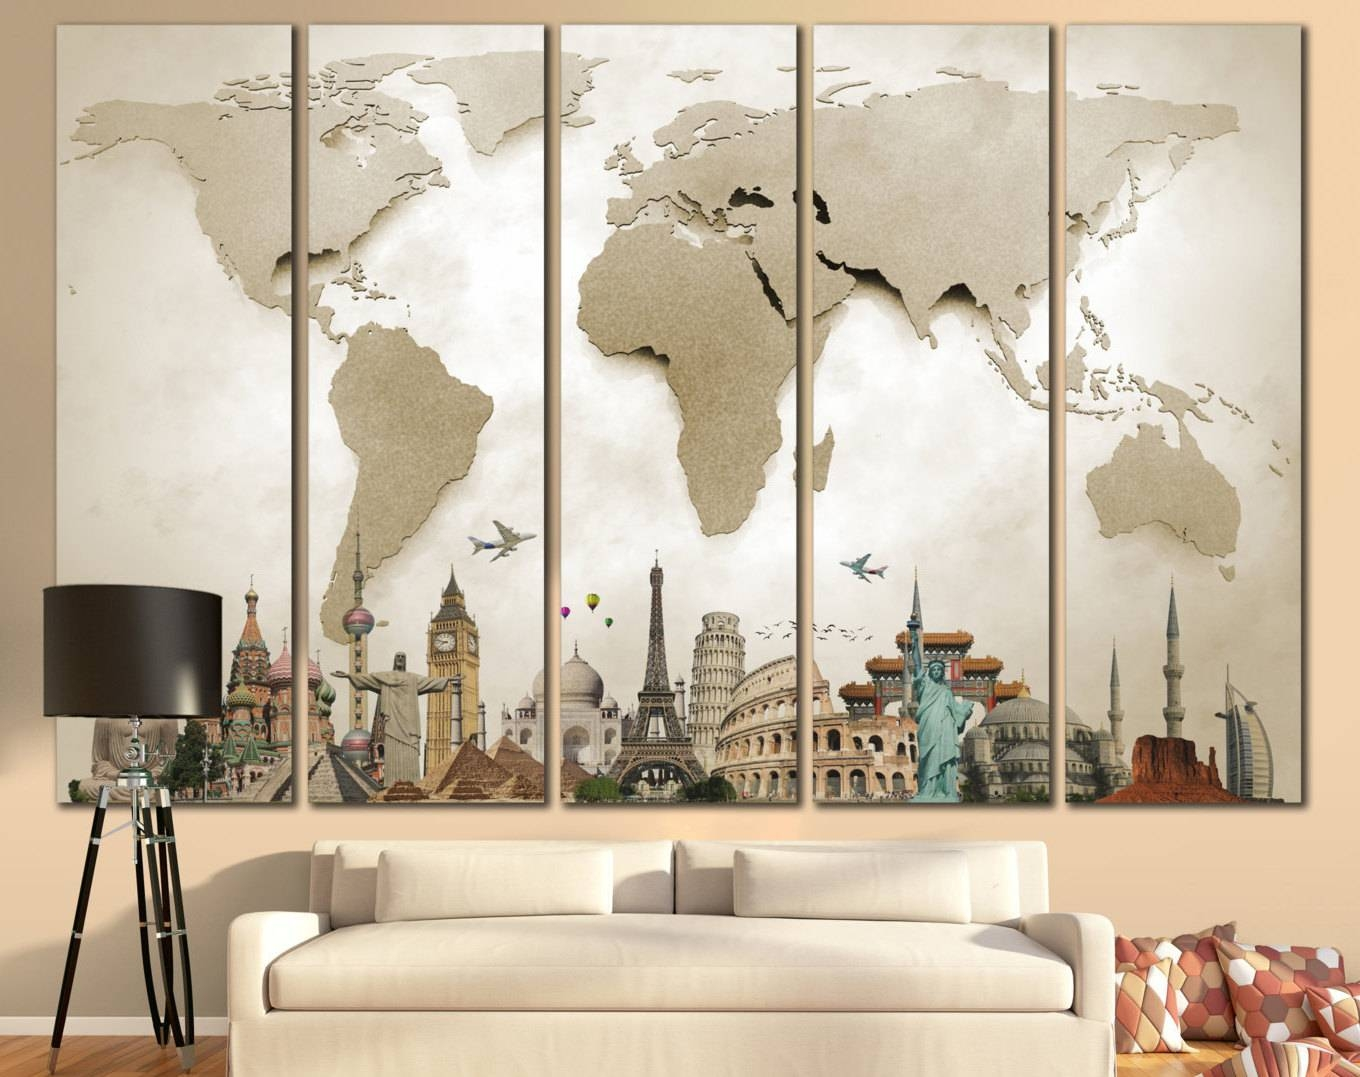 Enchanting Narrow Horizontal Wall Art Pieces Canvas Prints In Most Popular Horizontal Canvas Wall Art (View 6 of 20)